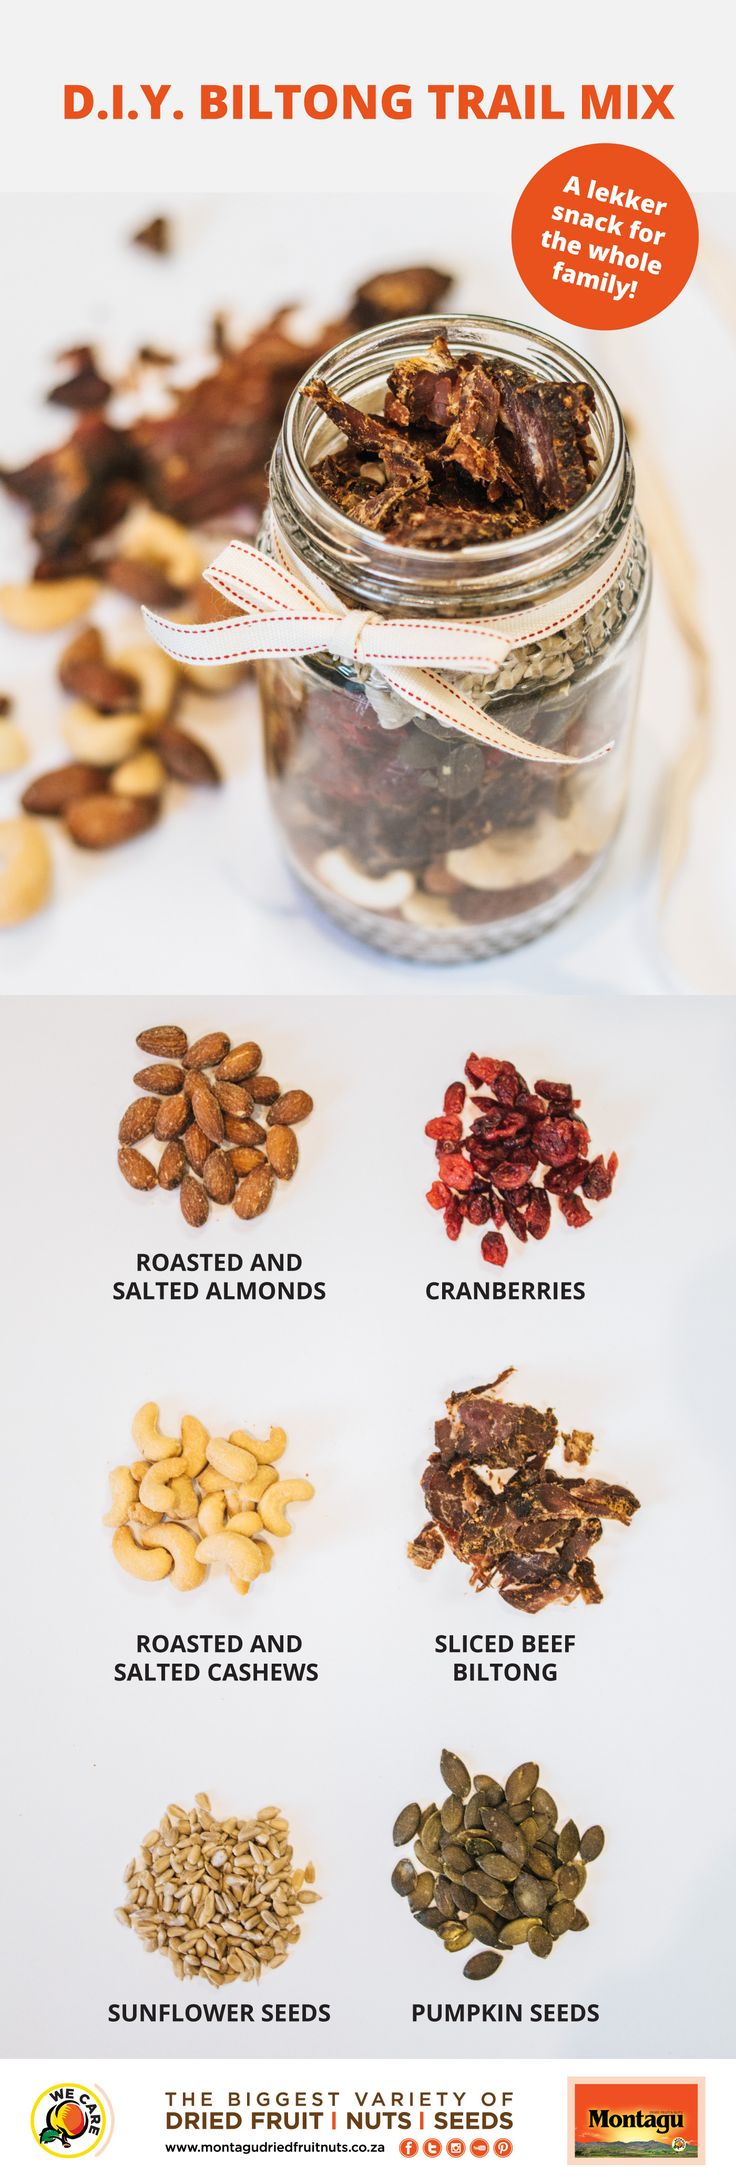 Saturday sport just wouldn't be the same without a lekker biltong snack, right? Ditch the chip 'n dip and get your salty fix with this yummy, healthy DIY biltong trail mix! It's super easy to create, and you'll find all the ingredients at your nearest Montagu store.